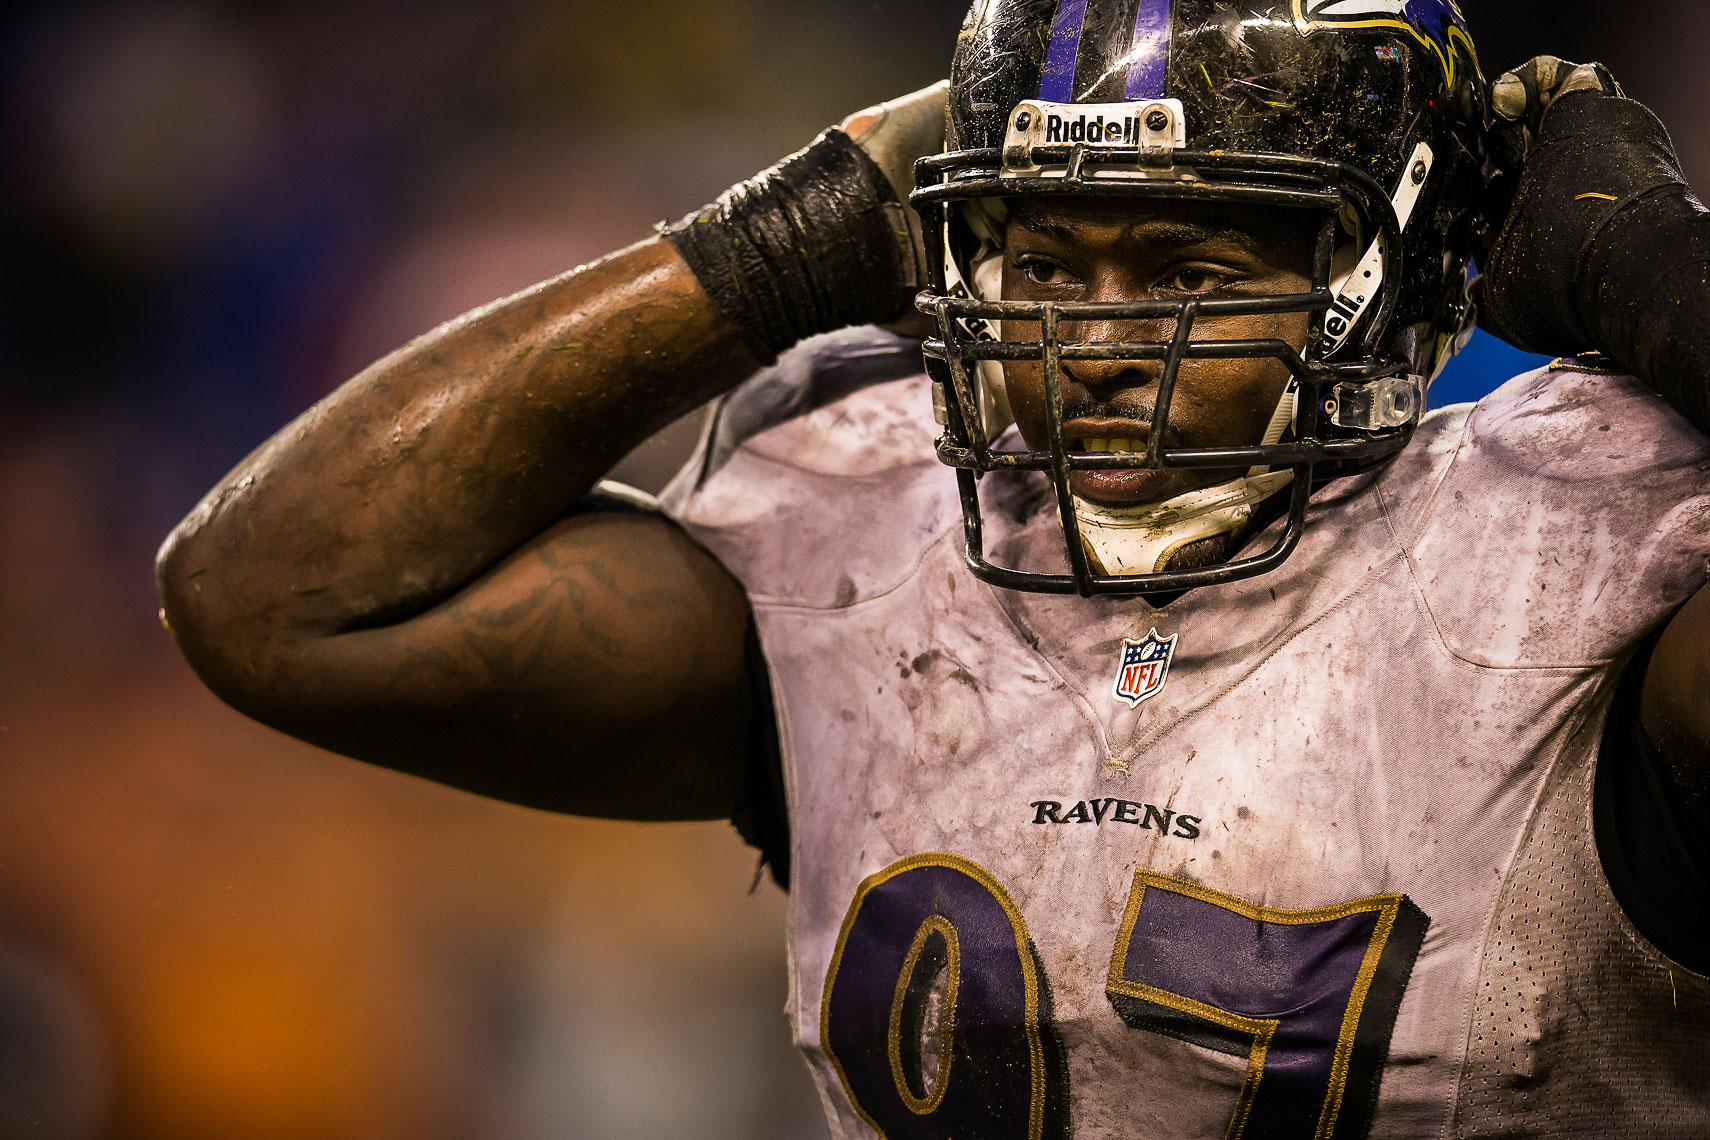 ravens31  NFL Baltimore Ravens photos NFL behind the scenes documentary sports photographer photo of Arthur Jones